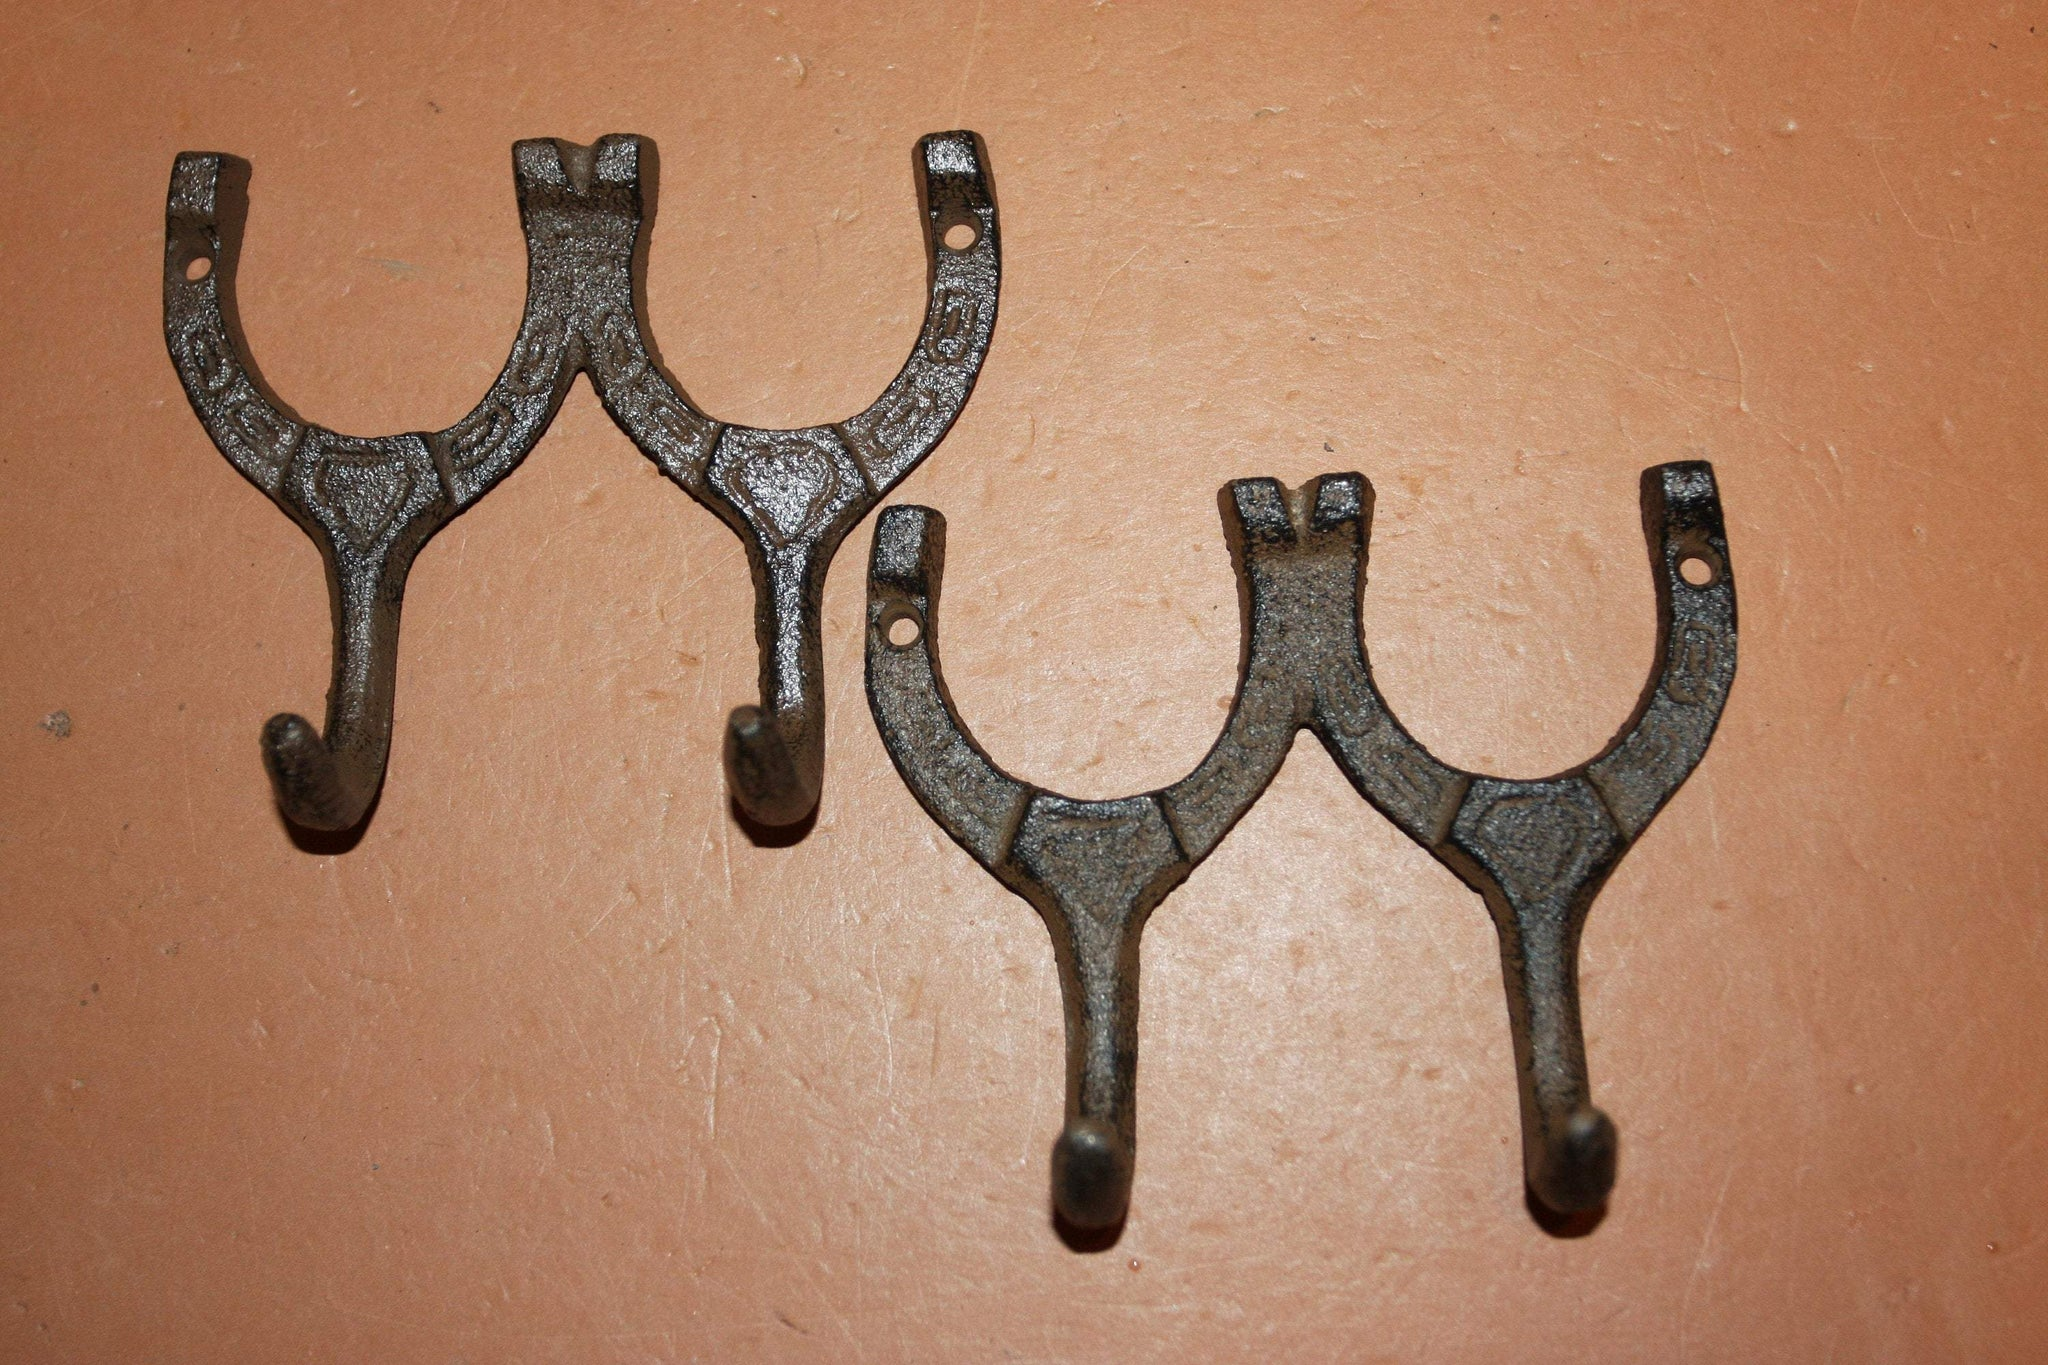 Horseshoe Towel Hooks, 4 inch Rustic Cast Iron Barn Farm Ranch Bathroom Decor, Volume Priced, W-9